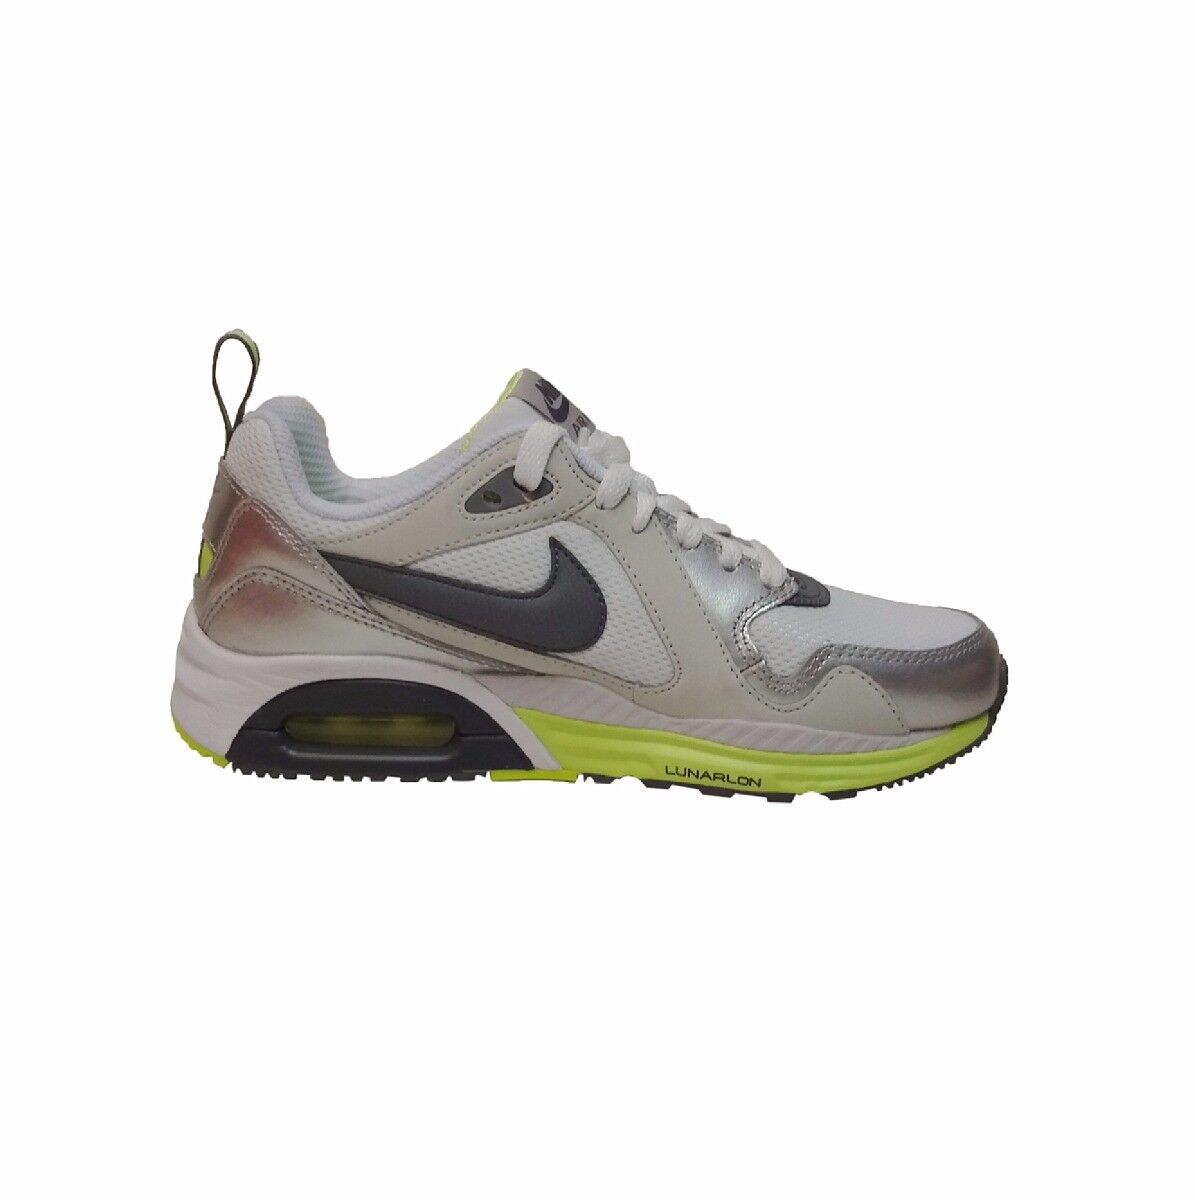 Nike air max trax running baskets chaussures taille uk 5.5 6 blanc gris rrp £ 100/-